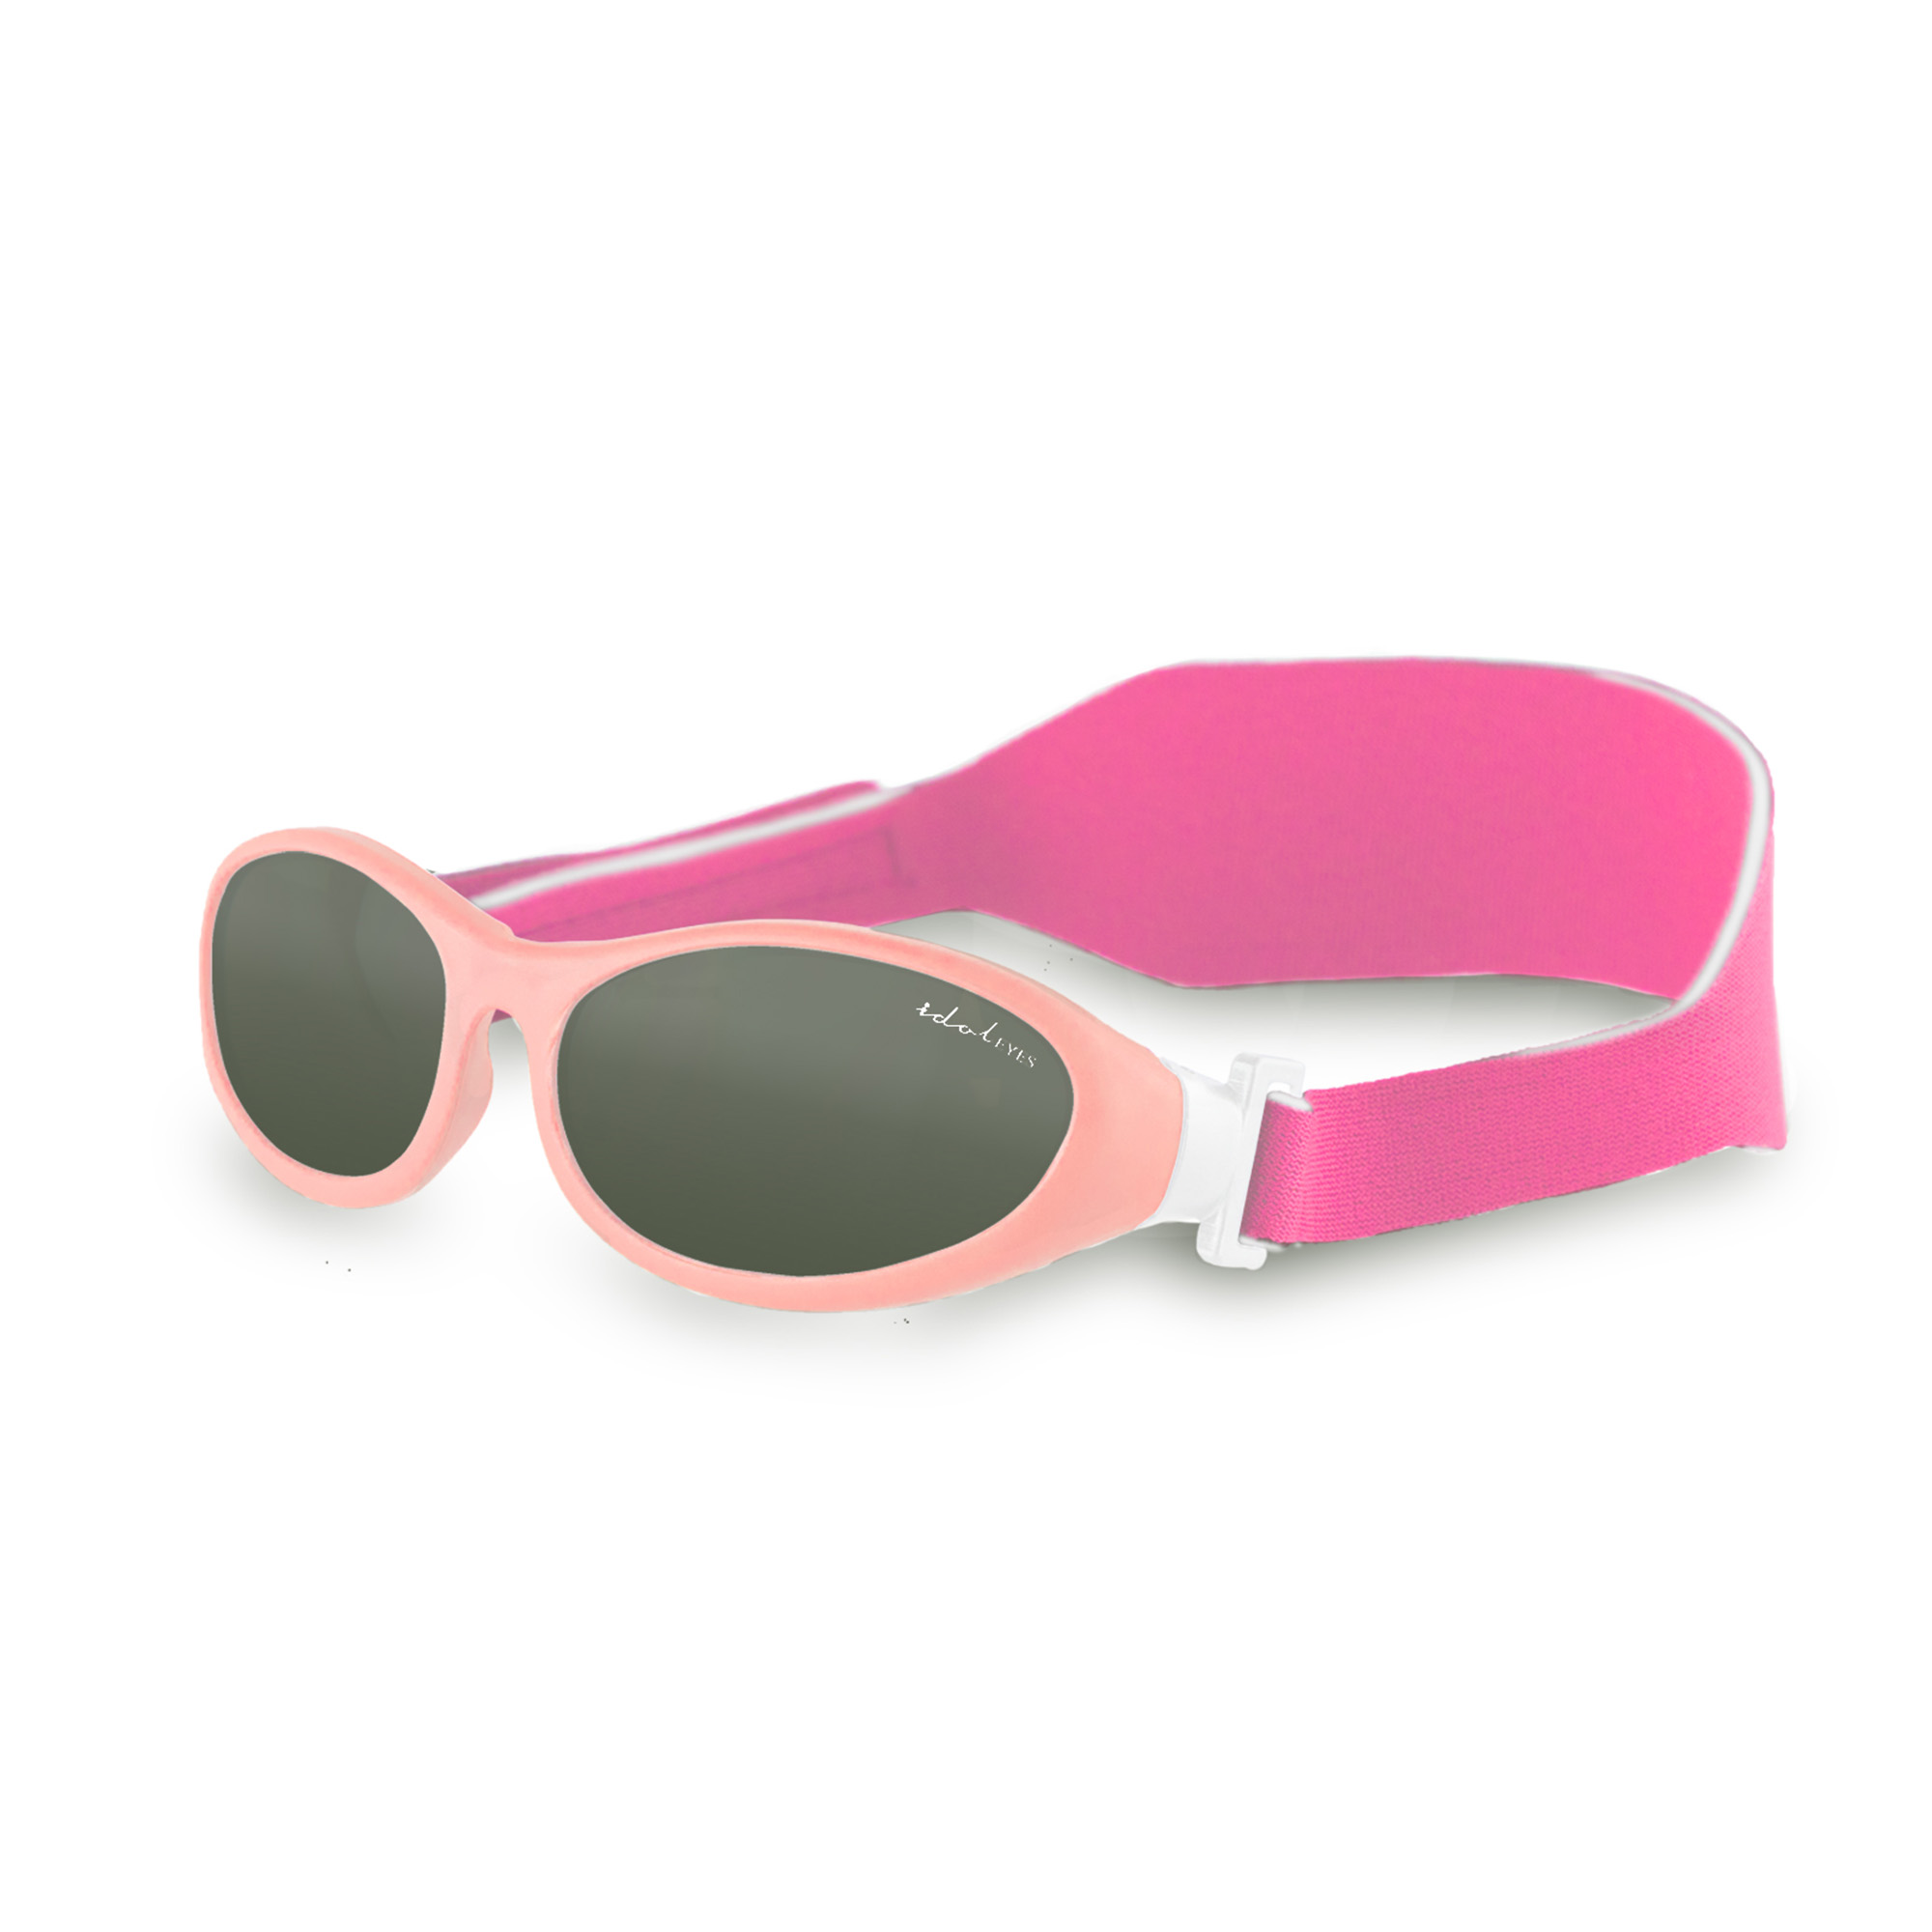 for Baby Boys Baby Sunglasses with Adjustable/Strap Toddler Sunglasses with Carrying Case 3 to 18 Months 100/% UV Protection